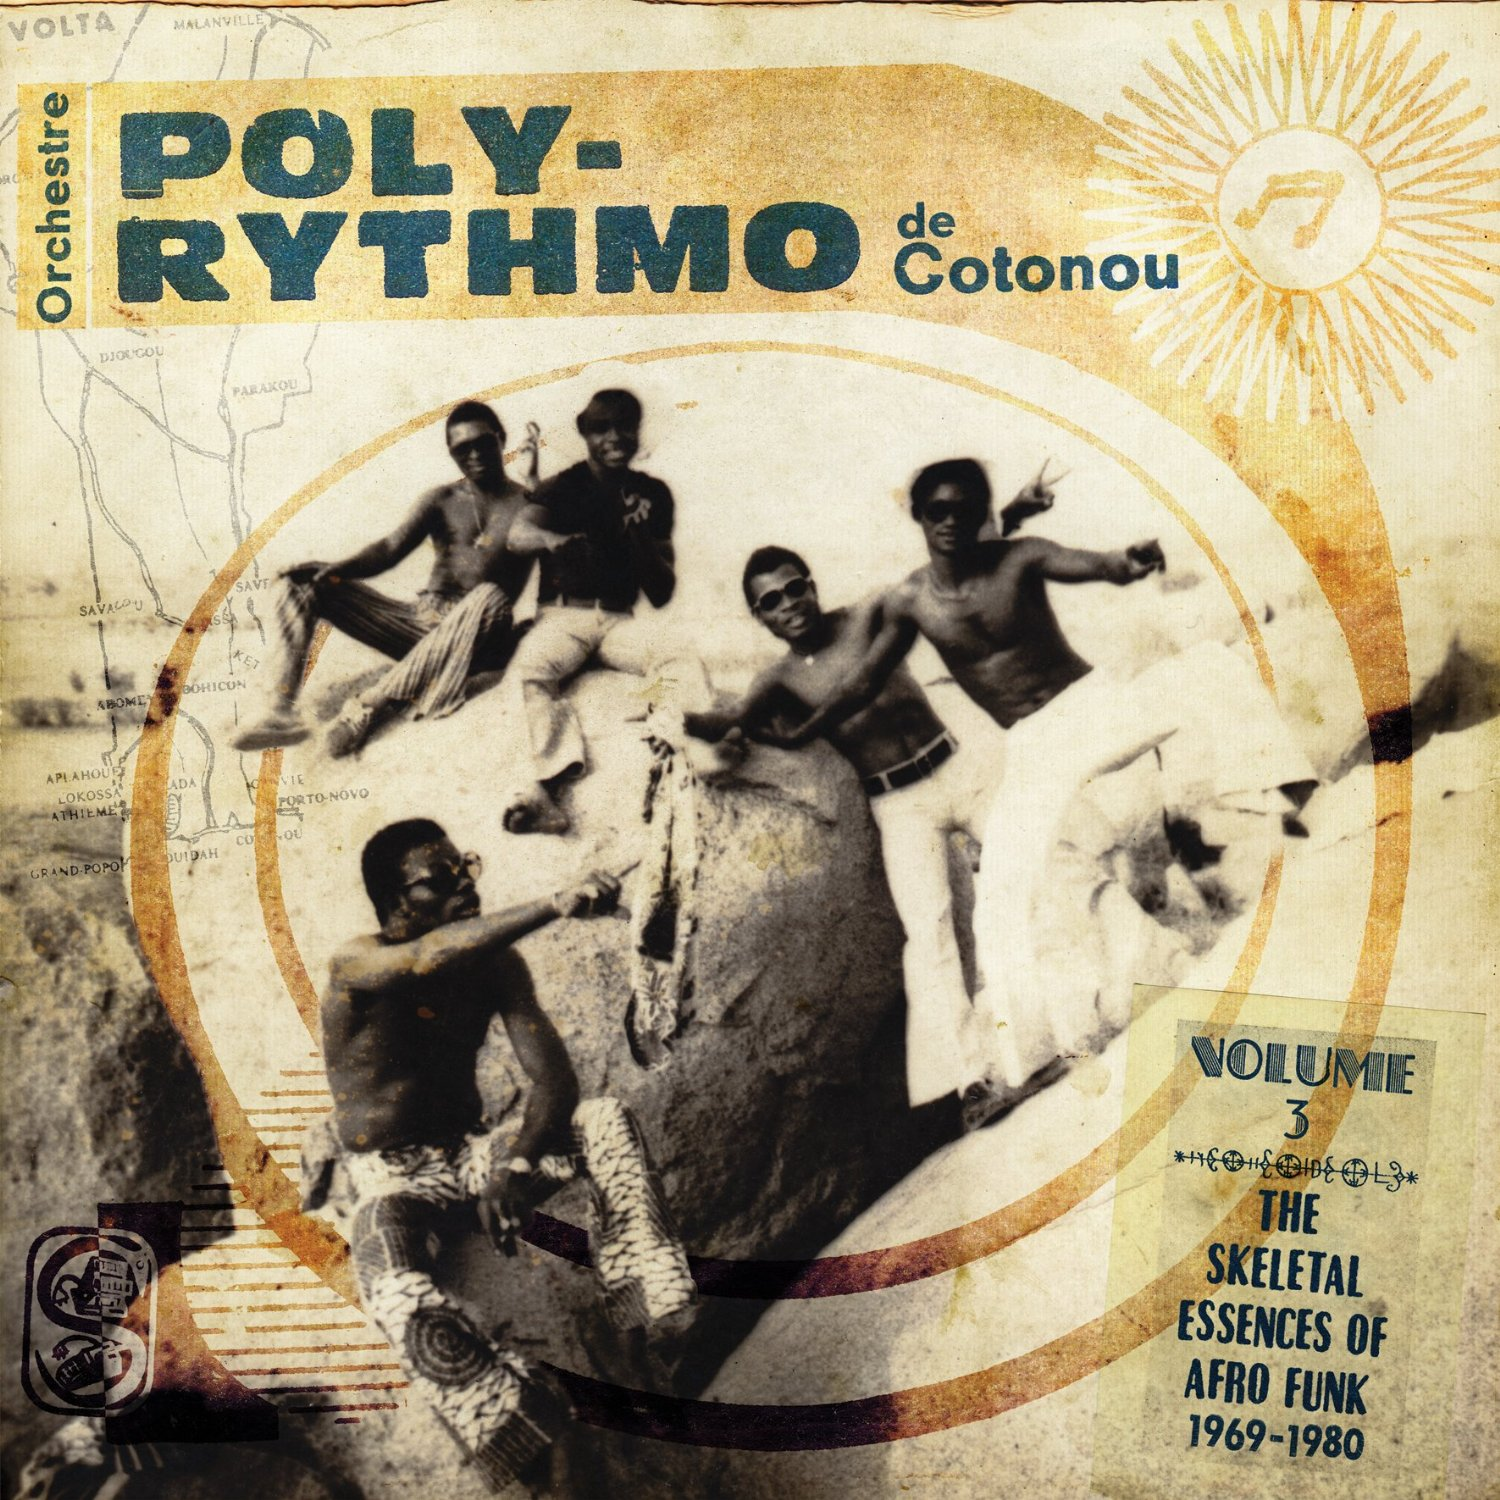 Orchestre Poly-Rythmo Vol 3: The Skeletal Essences of Afro Funk 1969-1980  Release Date: May 14, 2013 Label: Analog Africa  SERVICE: Restoration, Mastering SOURCE MATERIAL: 45 rpm records NUMBER OF DISCS: 1 GENRE: Afro-Beat FORMAT: CD and LP